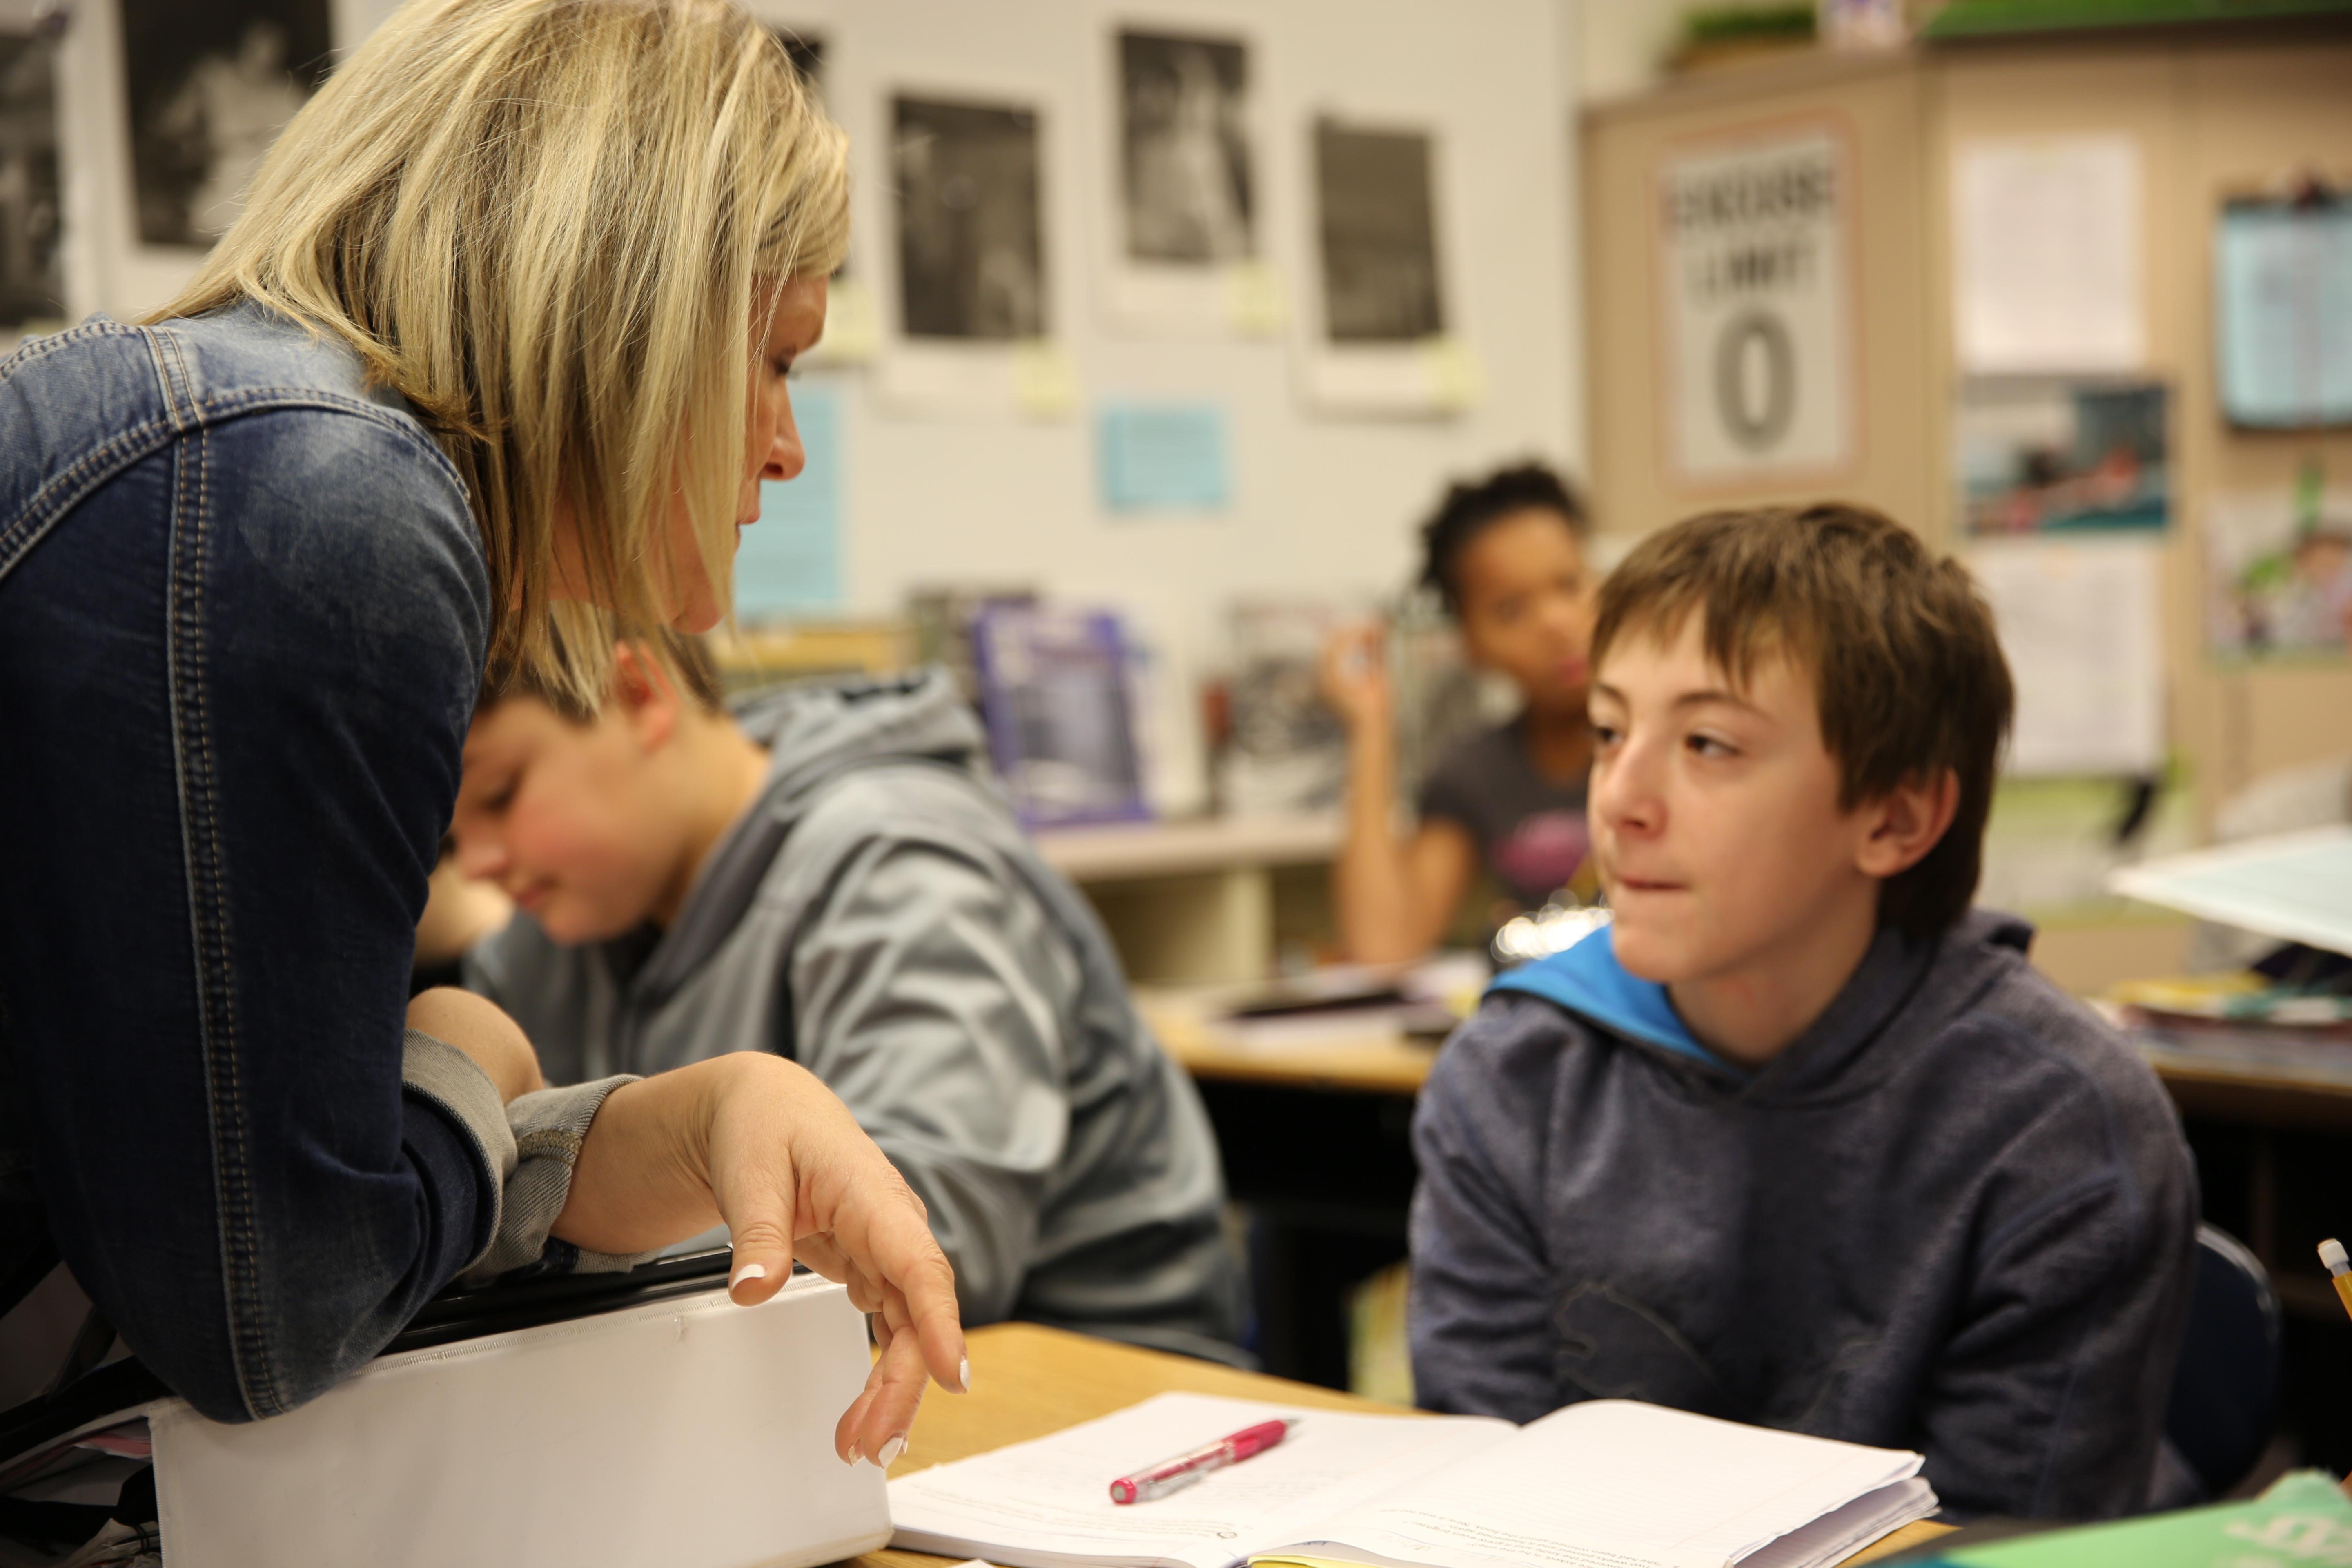 Class Of 2025 student Ethan listens to his writing teacher, Ashley Wilson, in November 2018 at a Beaverton middle school.